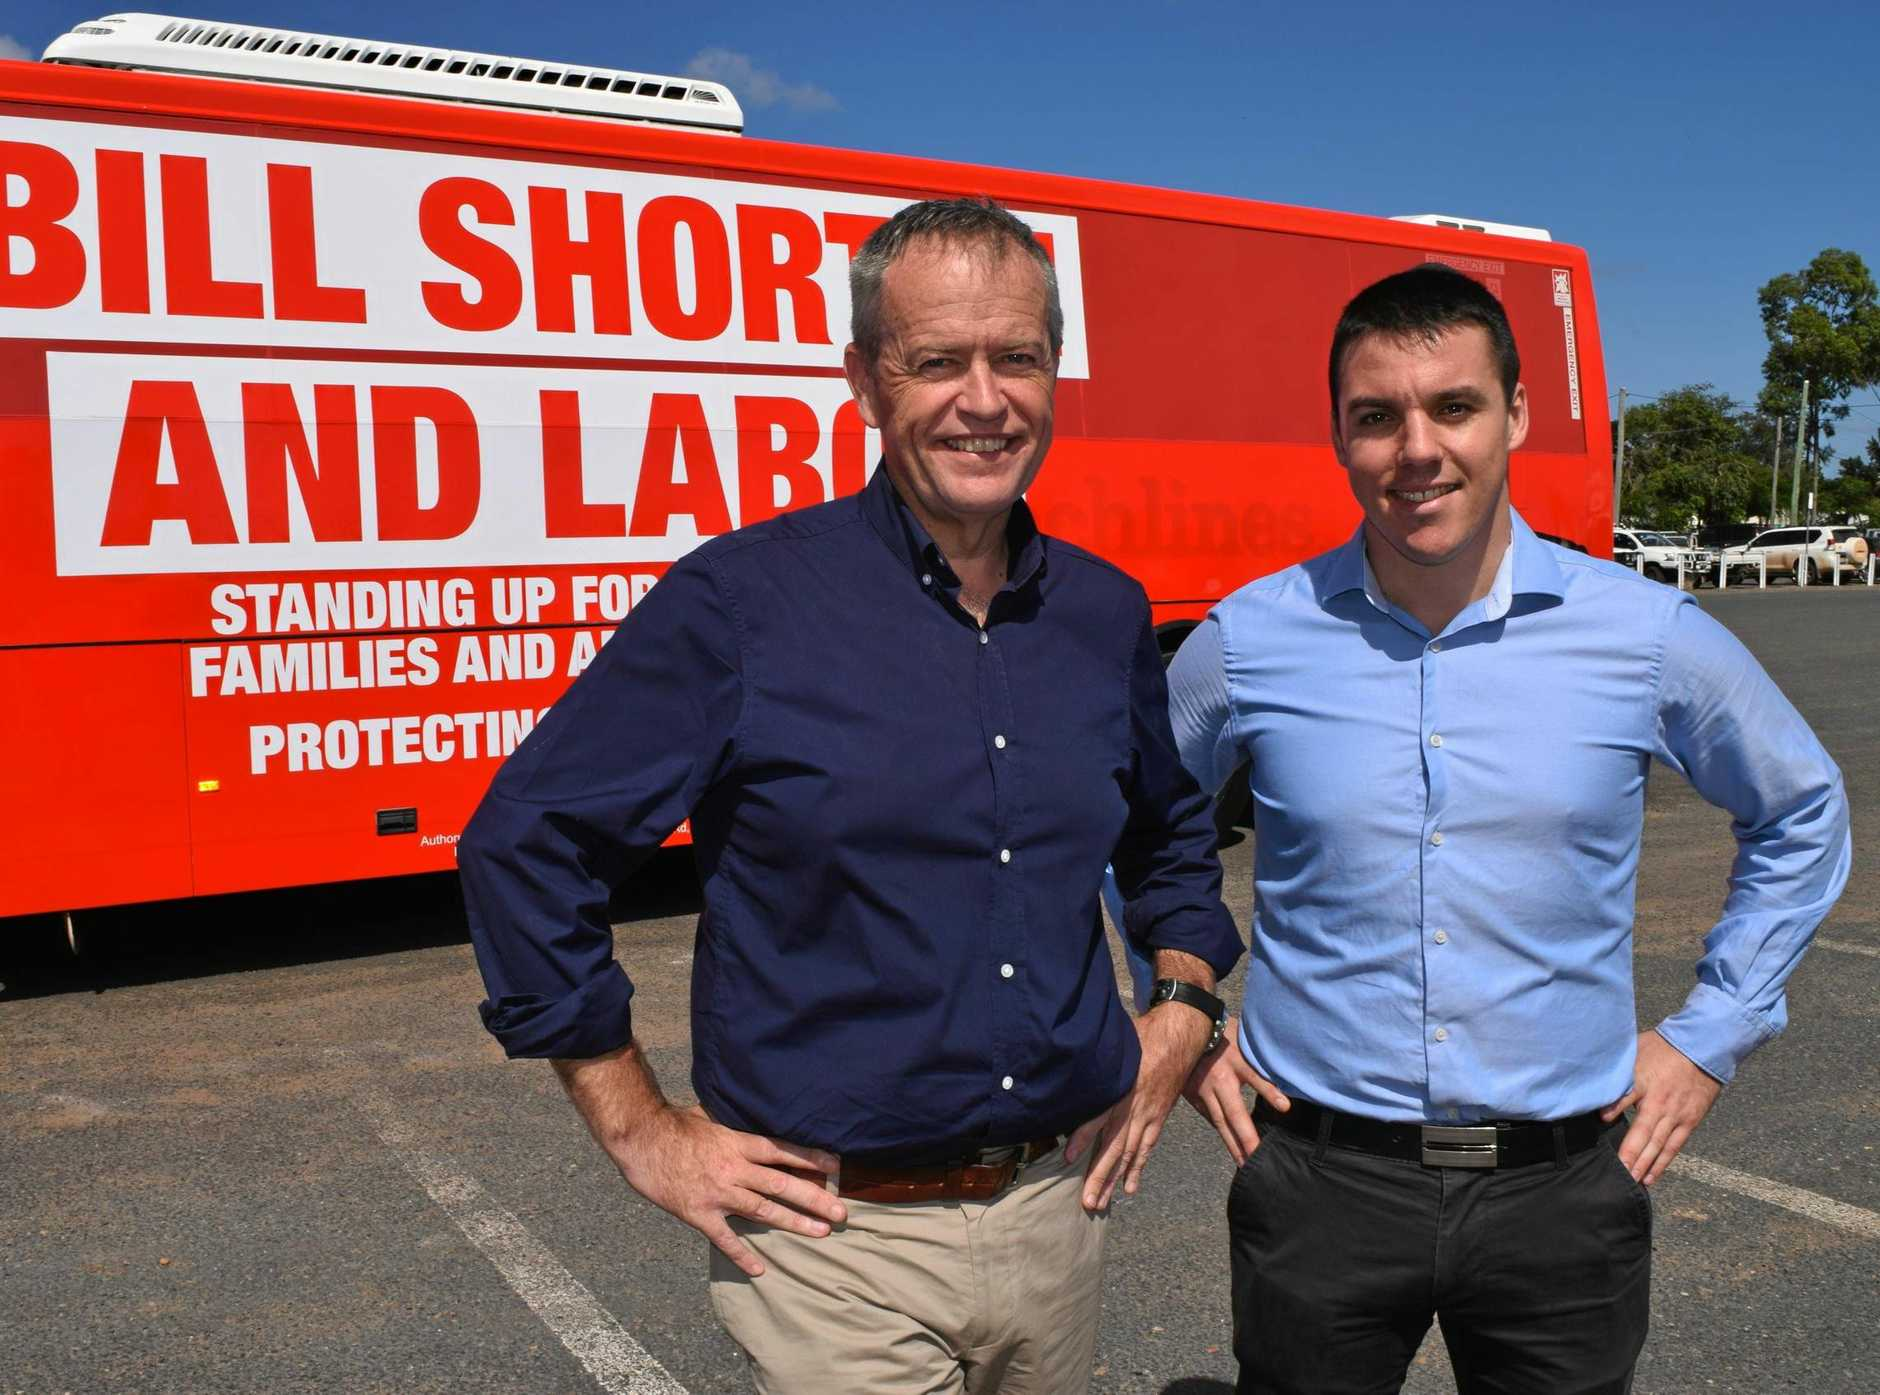 Federal opposition leader Bill Shorten will visit Gladstone for a town hall meeting on March 20.